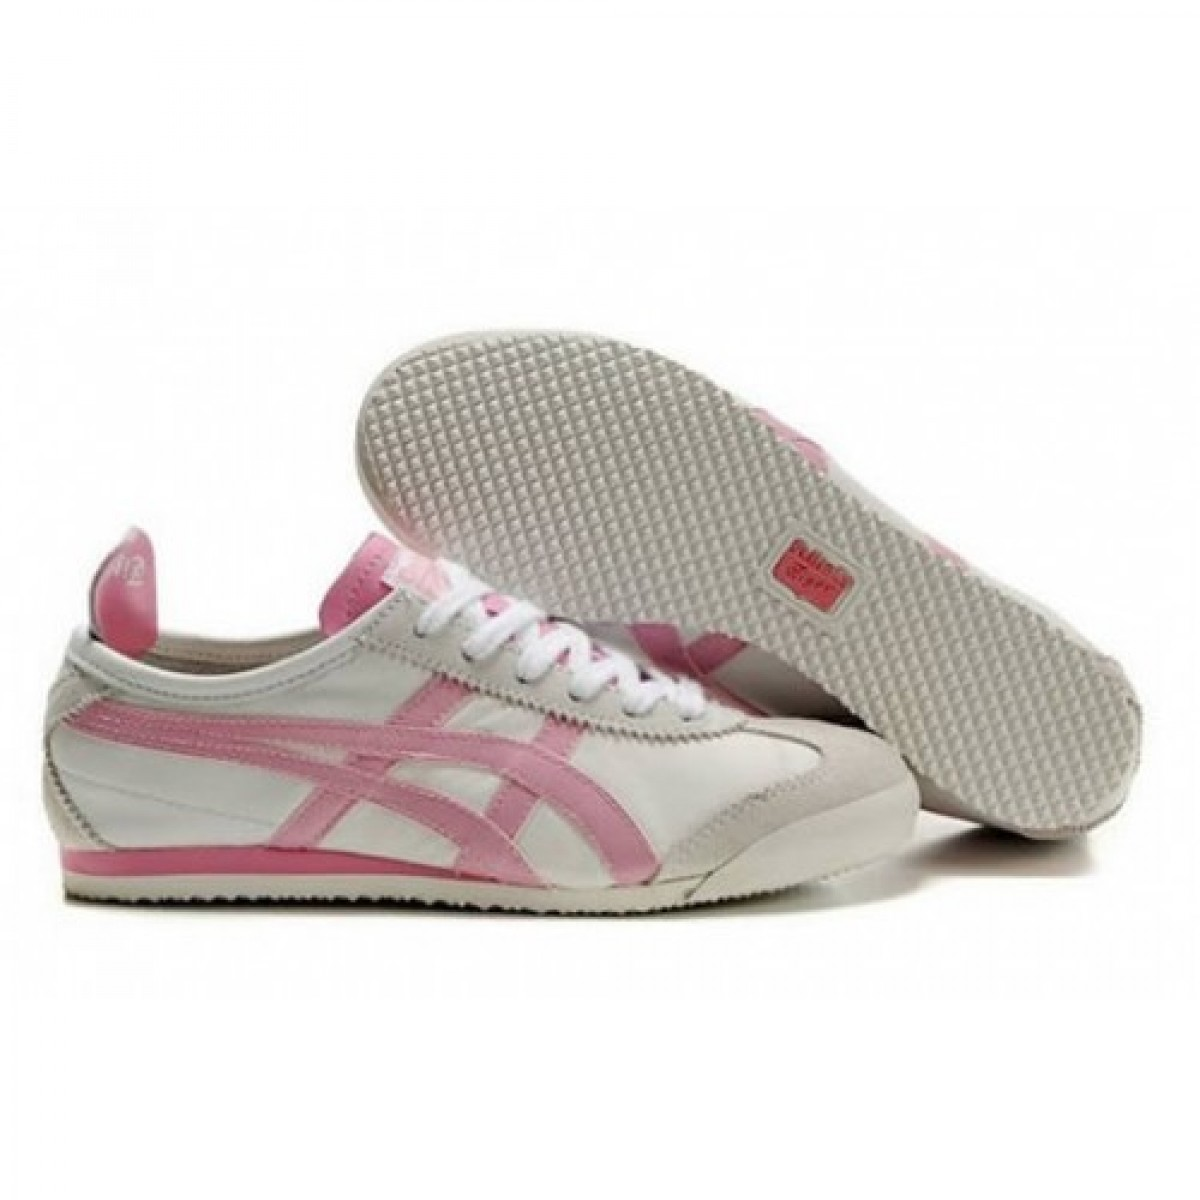 CO0396 Soldes Asics Onitsuka Tiger Mexico 66 Chaussures Femmes Blanc Rose 05739980 Pas Cher